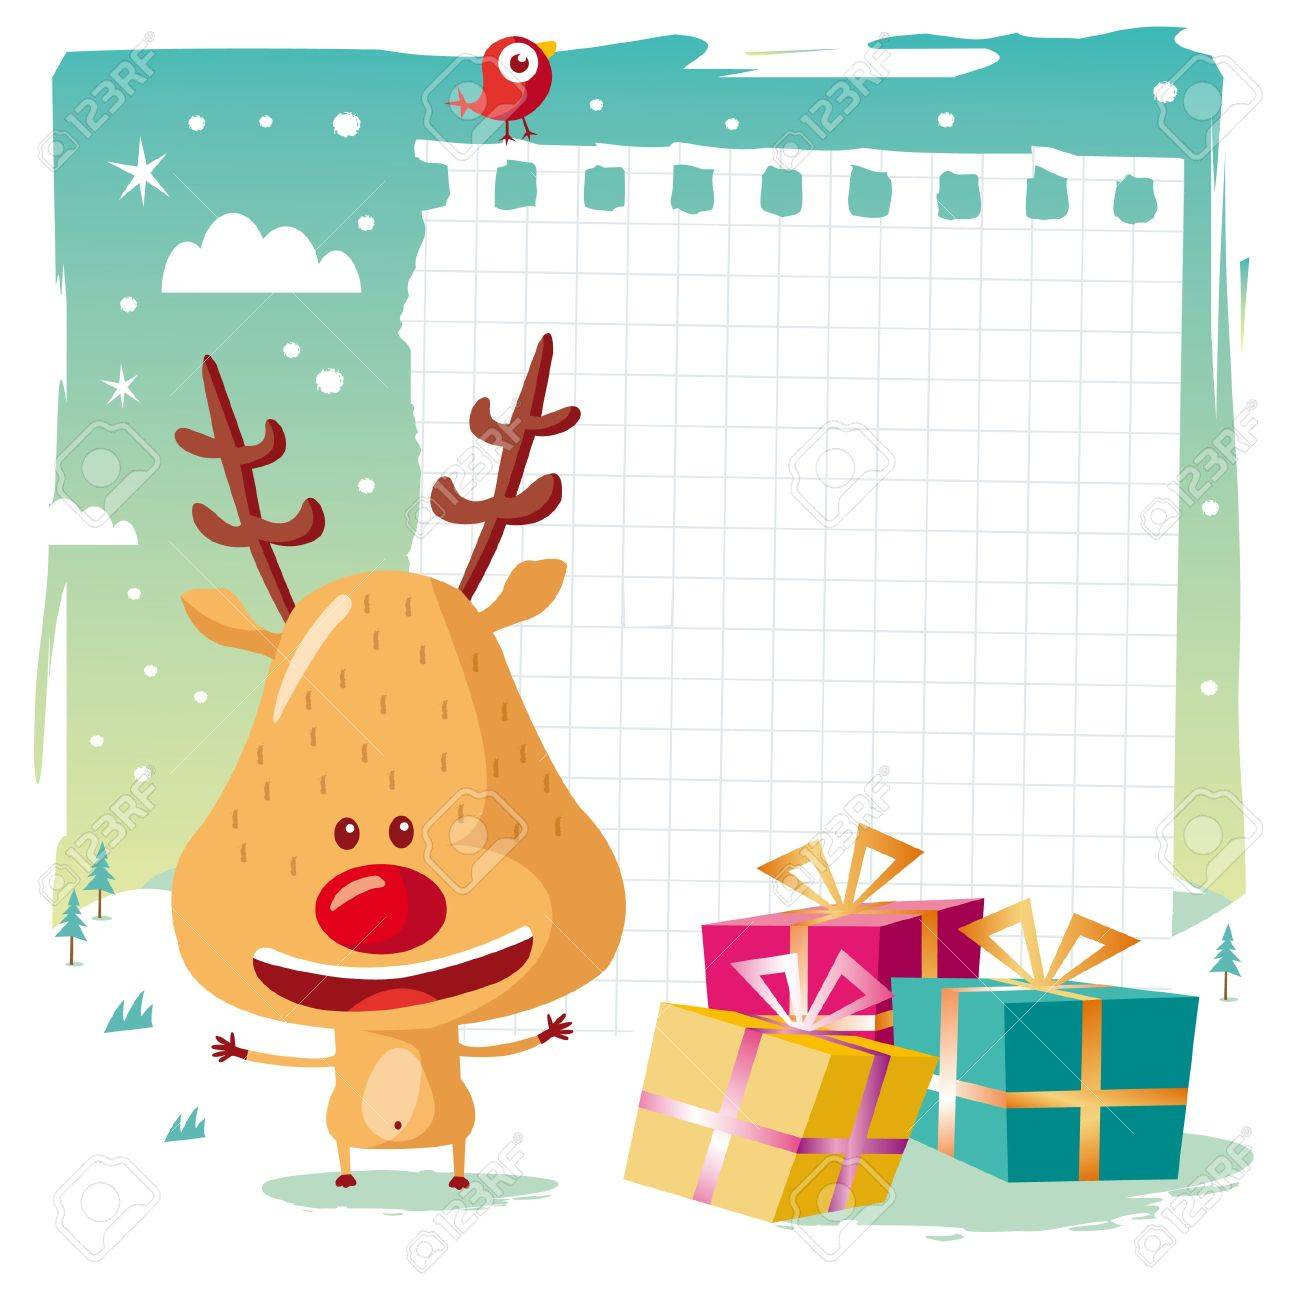 Christmas - Rudolph the Reindeer and his wishlist Stock Vector - 10444019